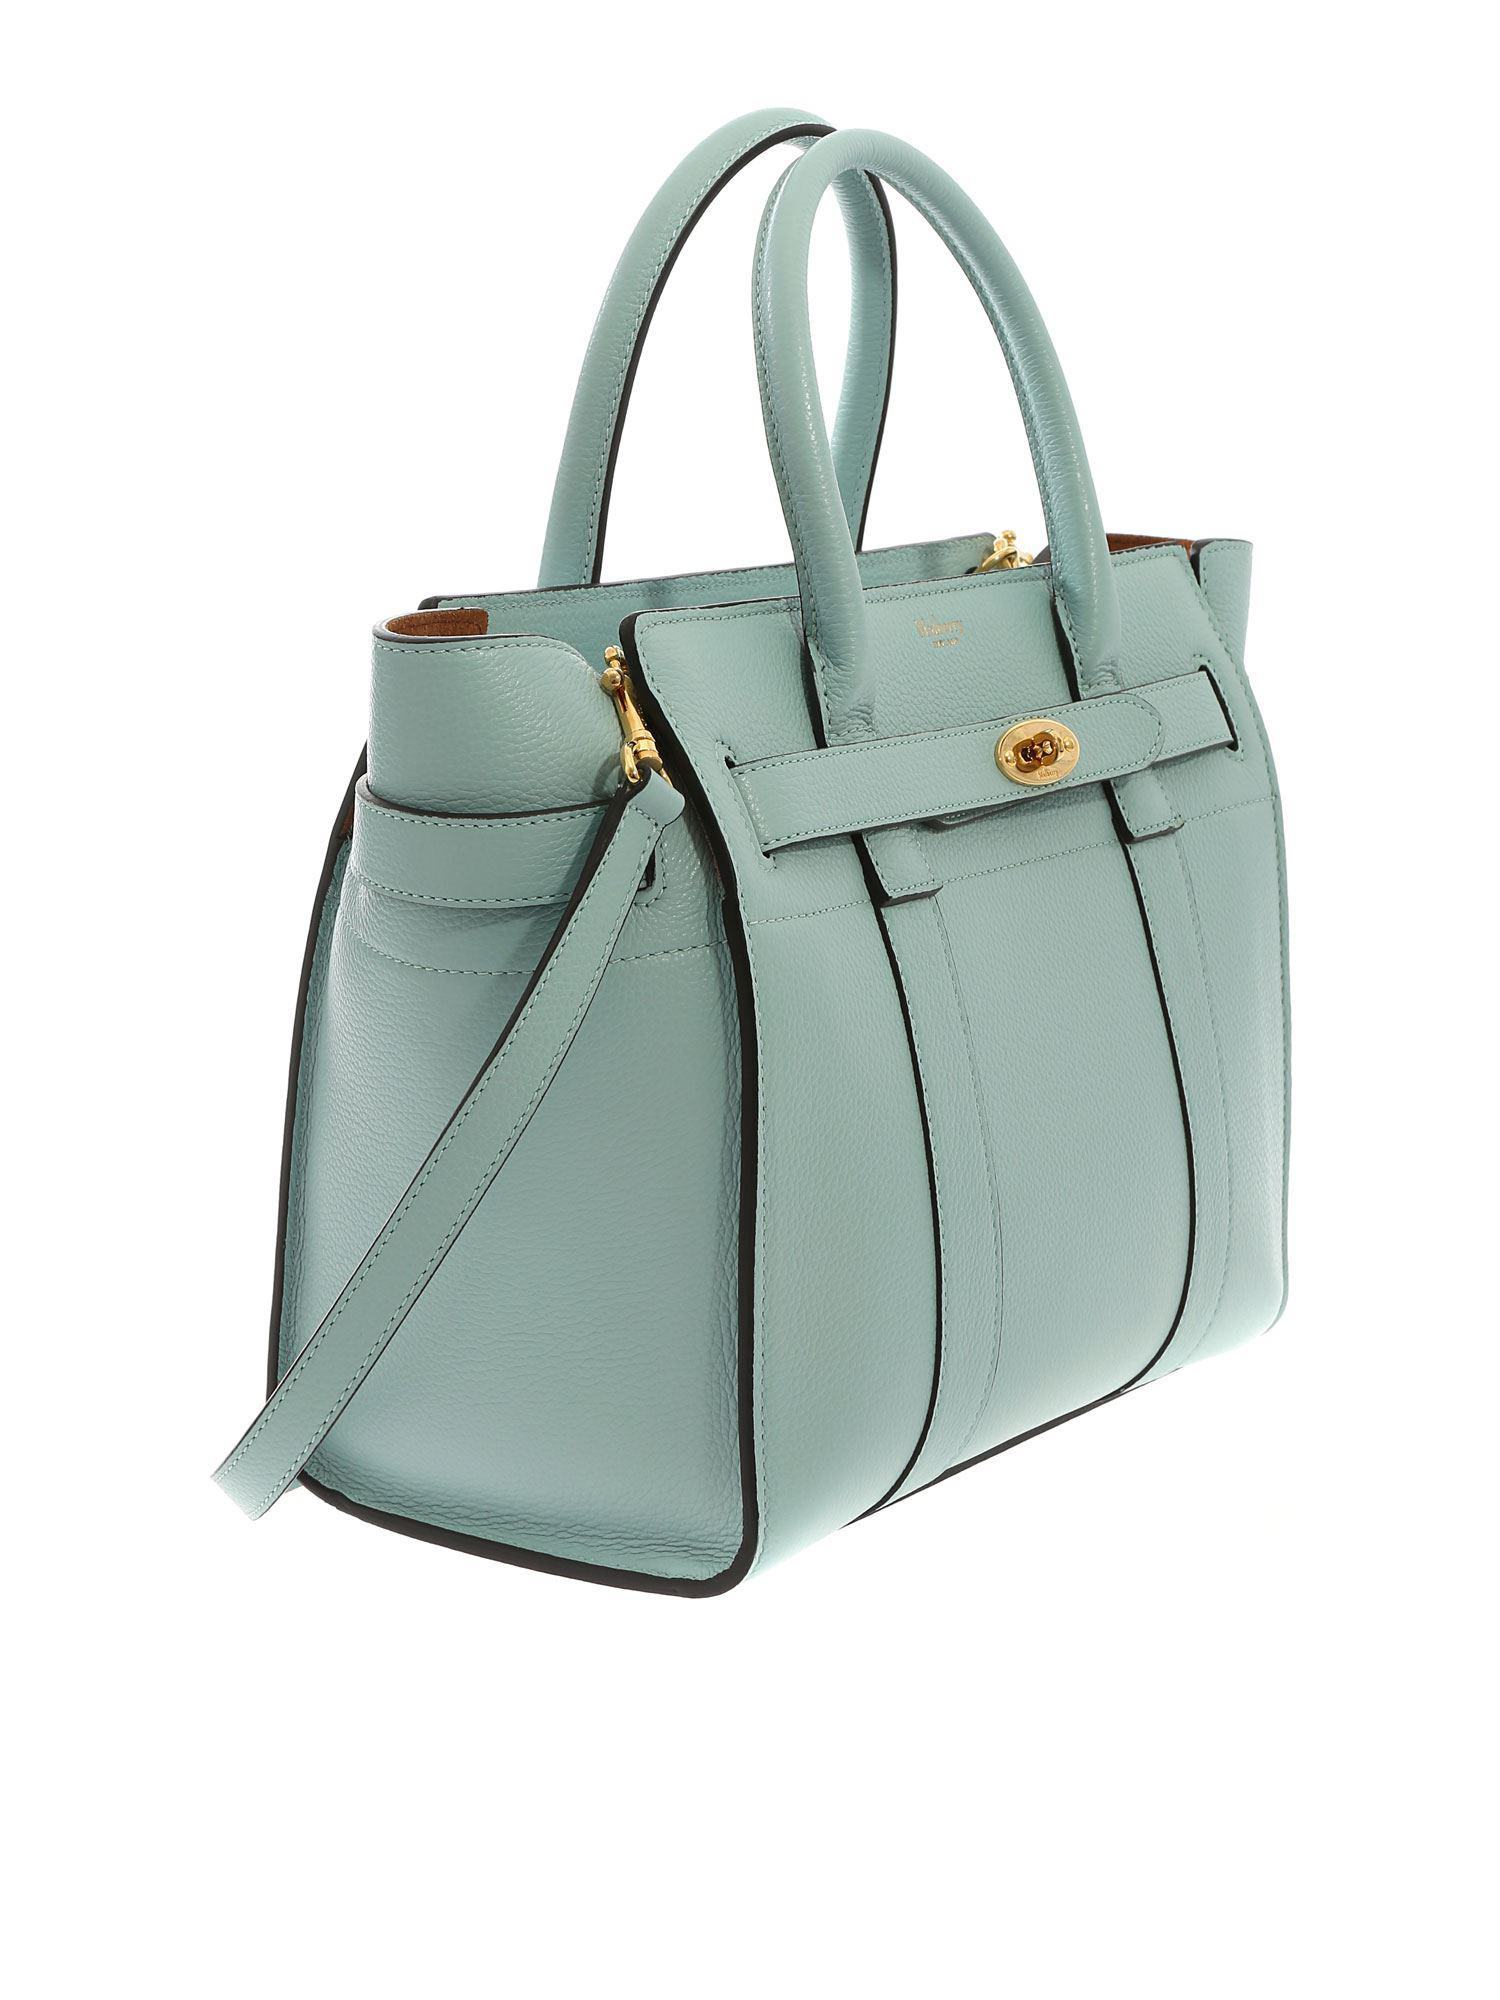 Mulberry - Small Zipped Bayswater Bag In Light Blue Leather - Lyst. View  fullscreen d90f76e122f77